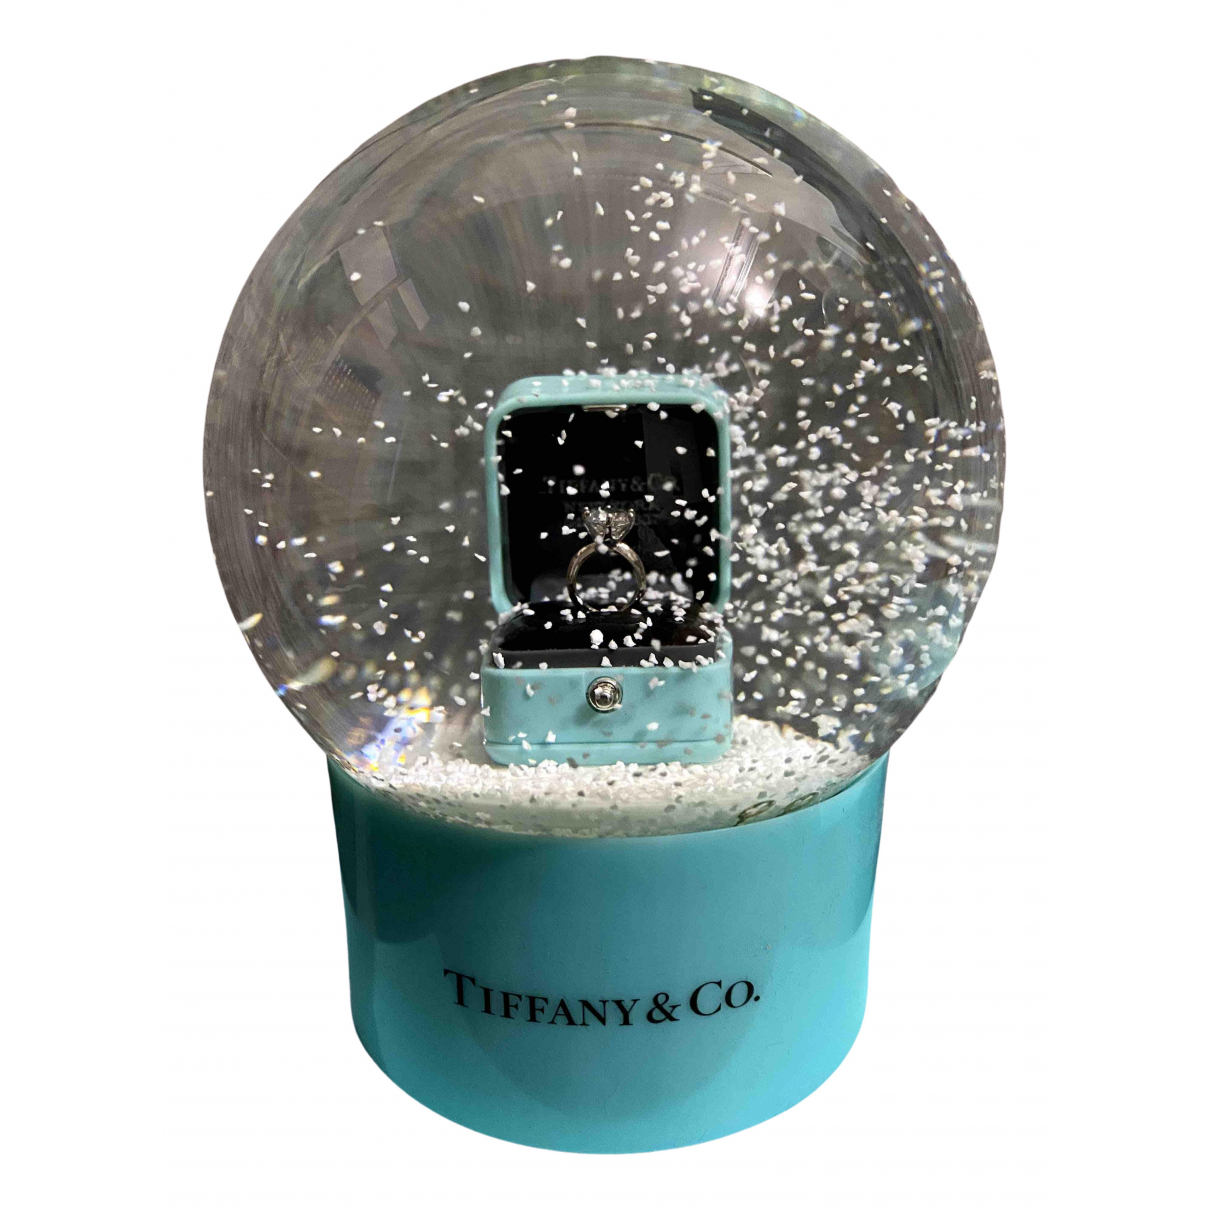 Tiffany & Co N Turquoise Glass Home decor for Life & Living N